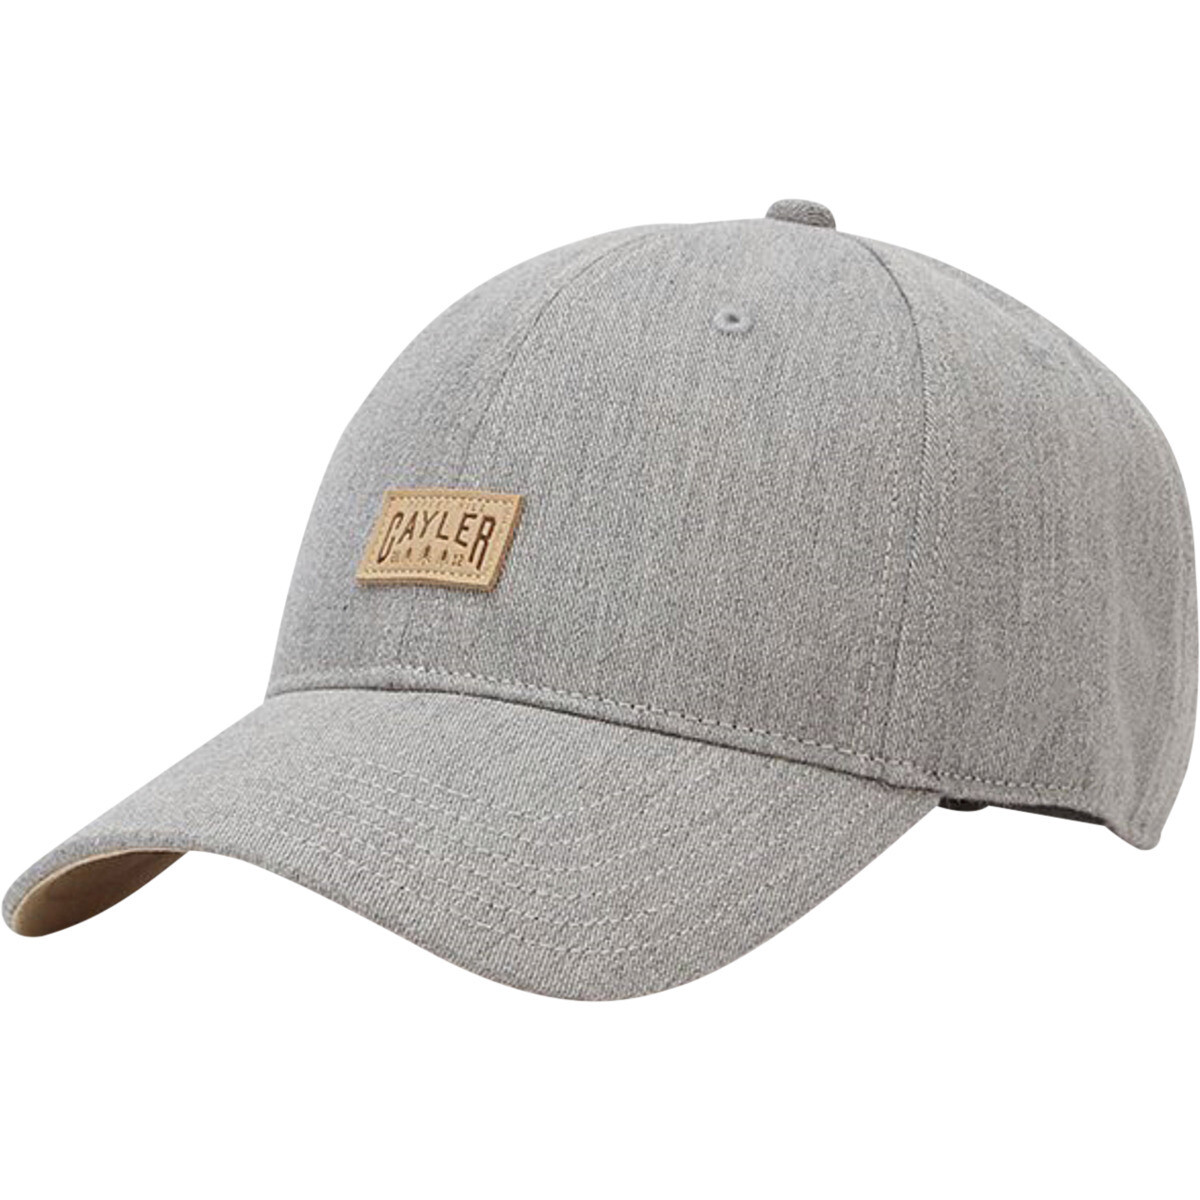 C&S CL Cayler Hill Curved Cap